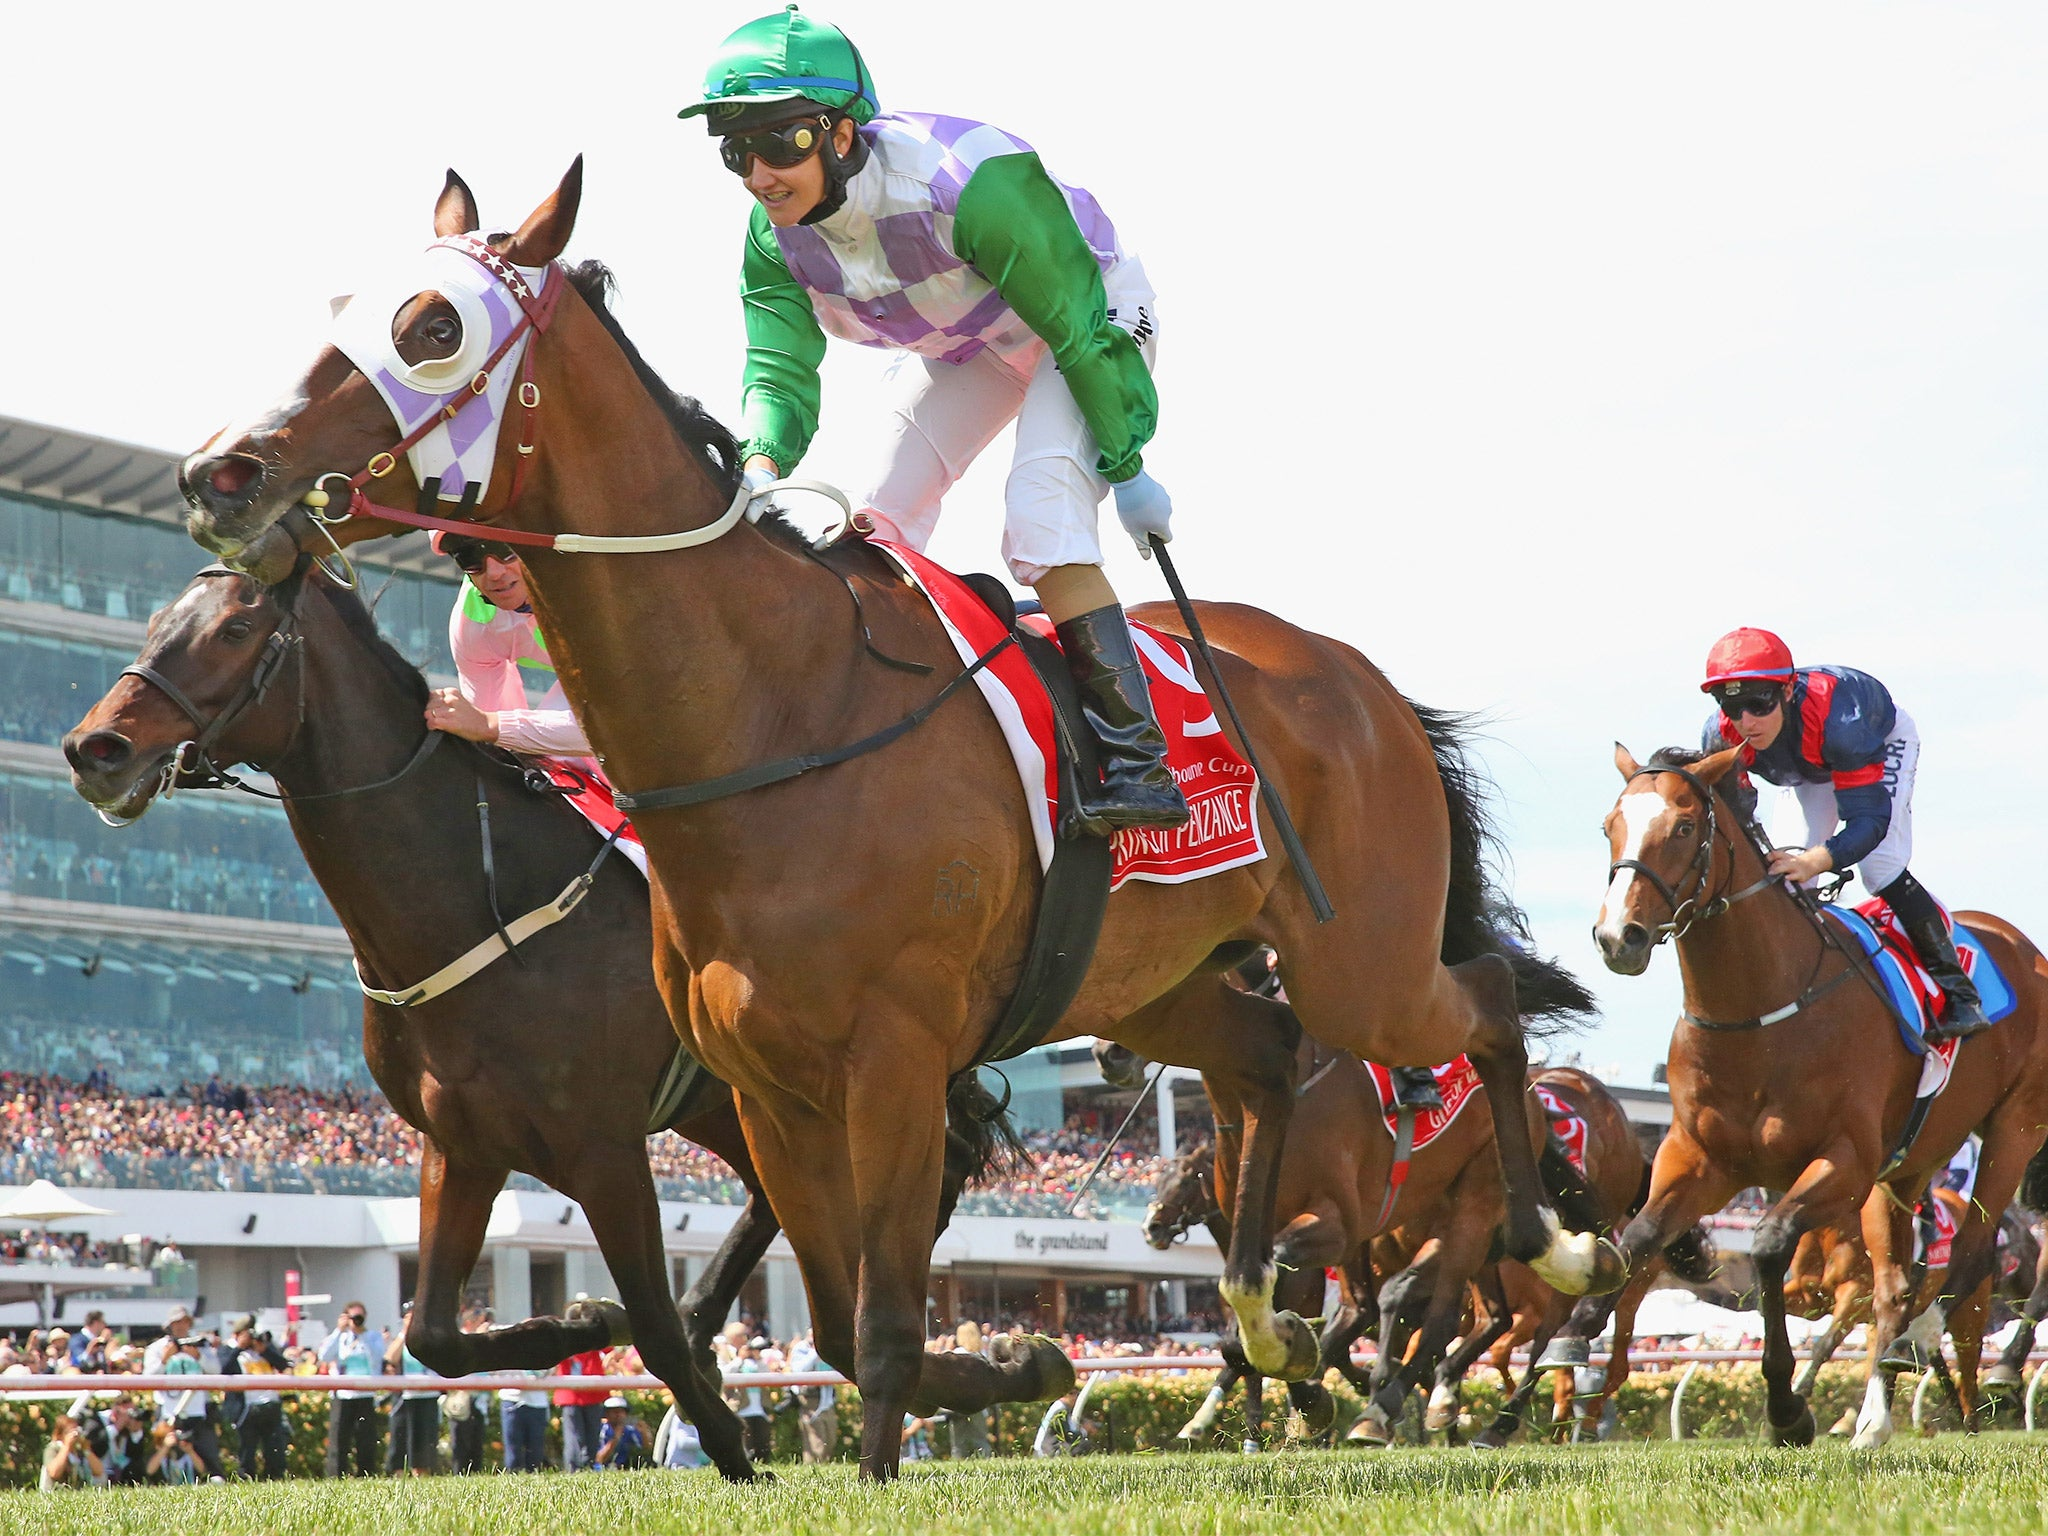 Melbourne Cup 2015 Michelle Payne Upsets Odds To Make History In Australia The Independent The Independent